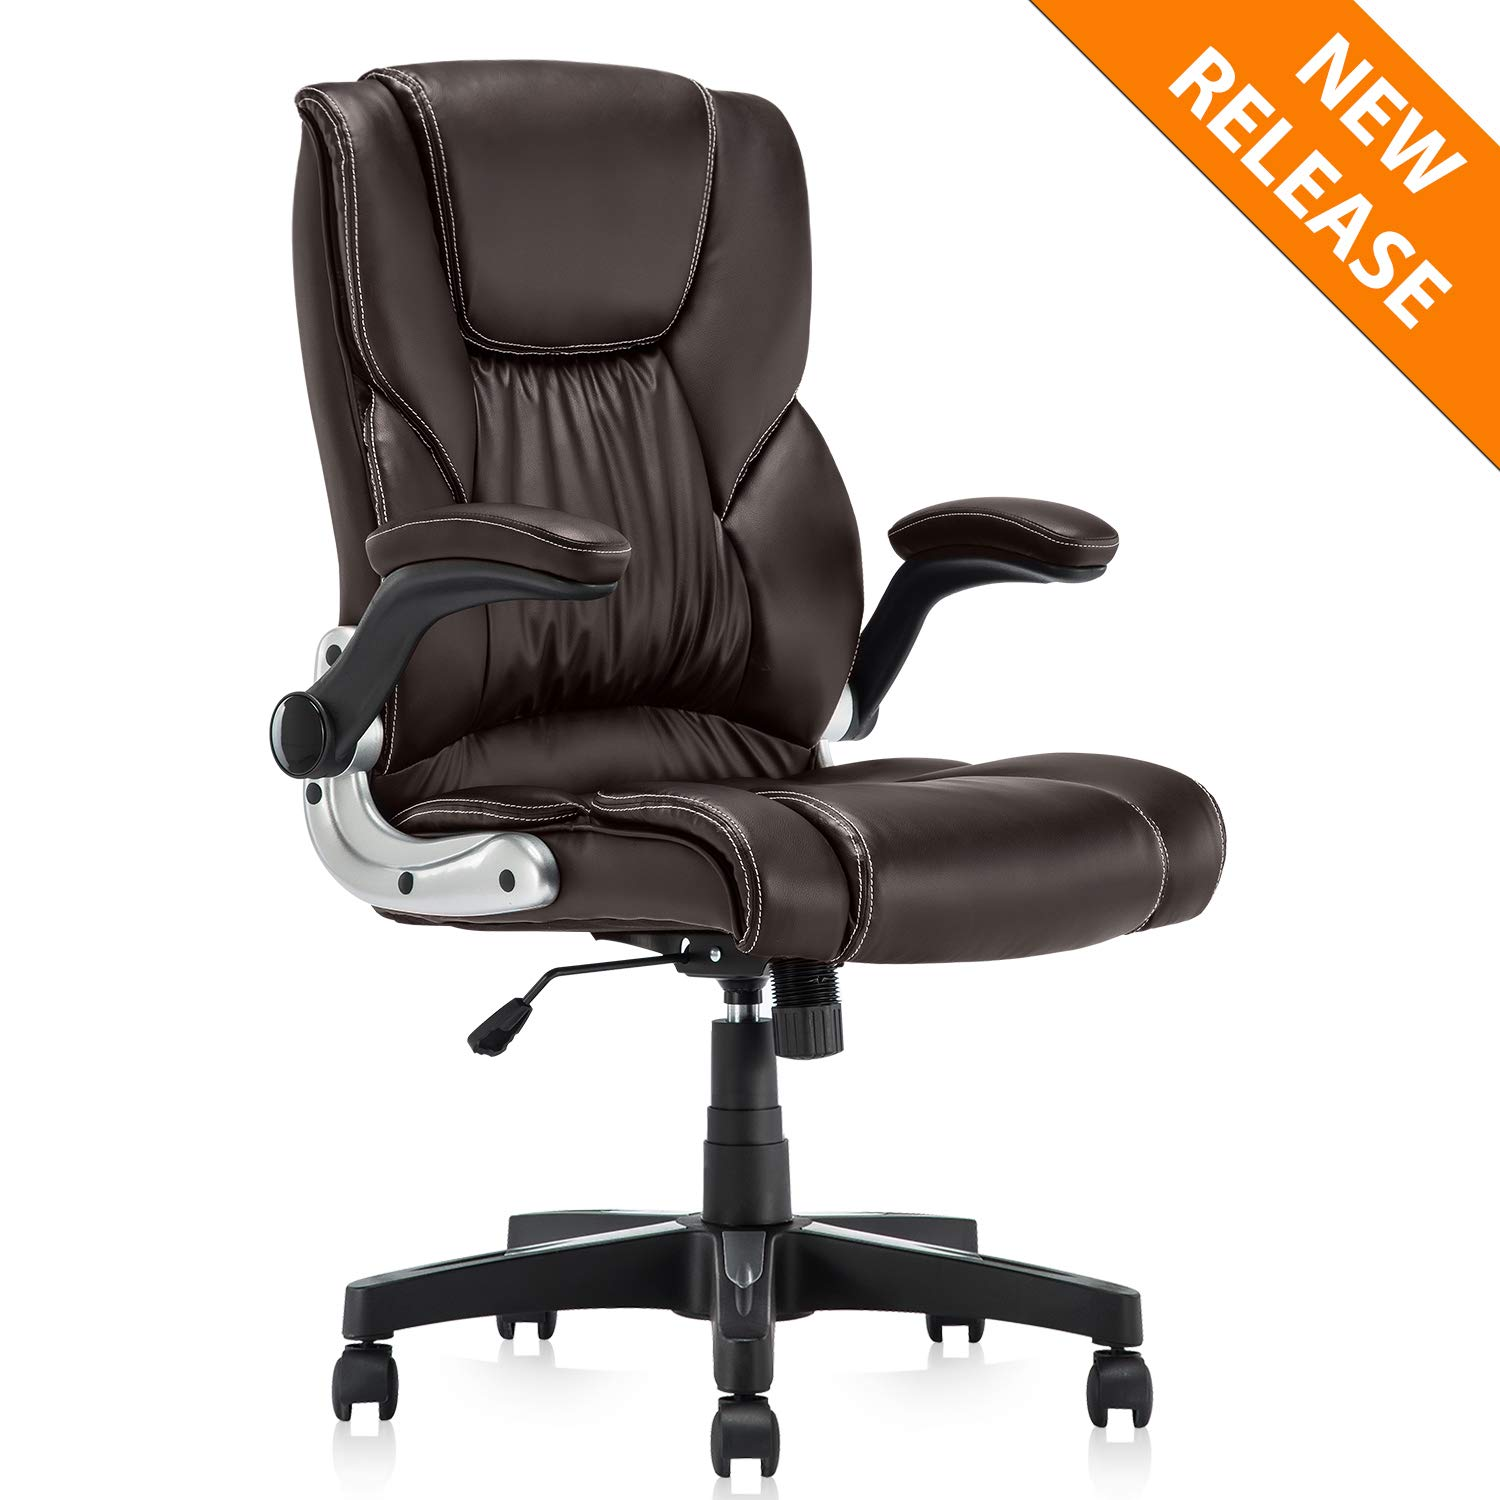 B2C2B Leather Executive Office Chair Brown Ergonomic Computer Desk Chair with Wheels and arms Swivel Task Chair Gaming Chair with Lumbar Support by B2C2B